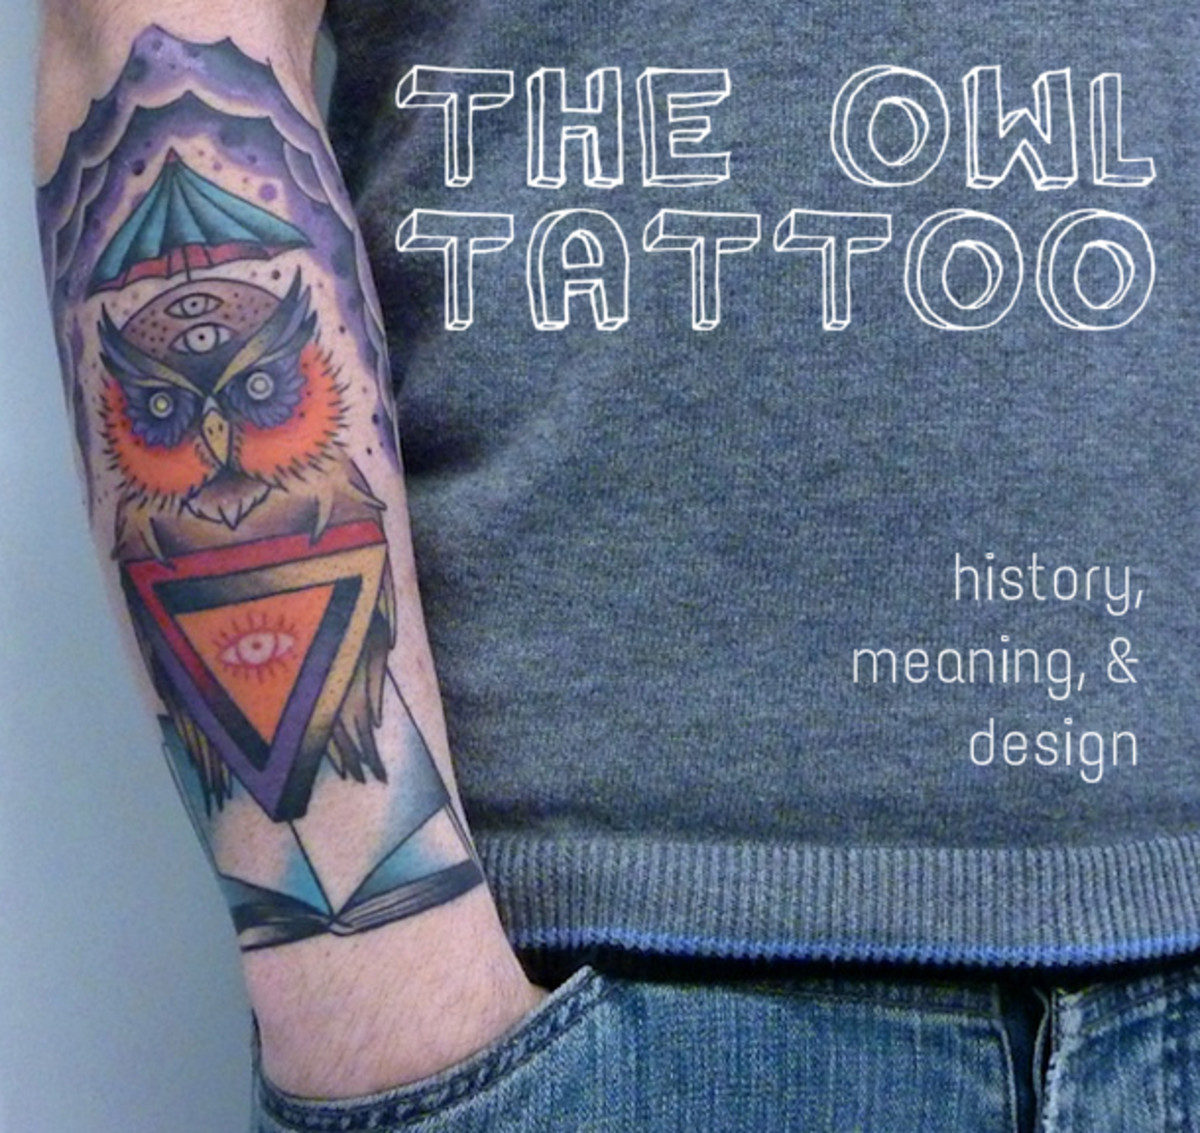 The Owl Tattoo: History, Meaning, & Design